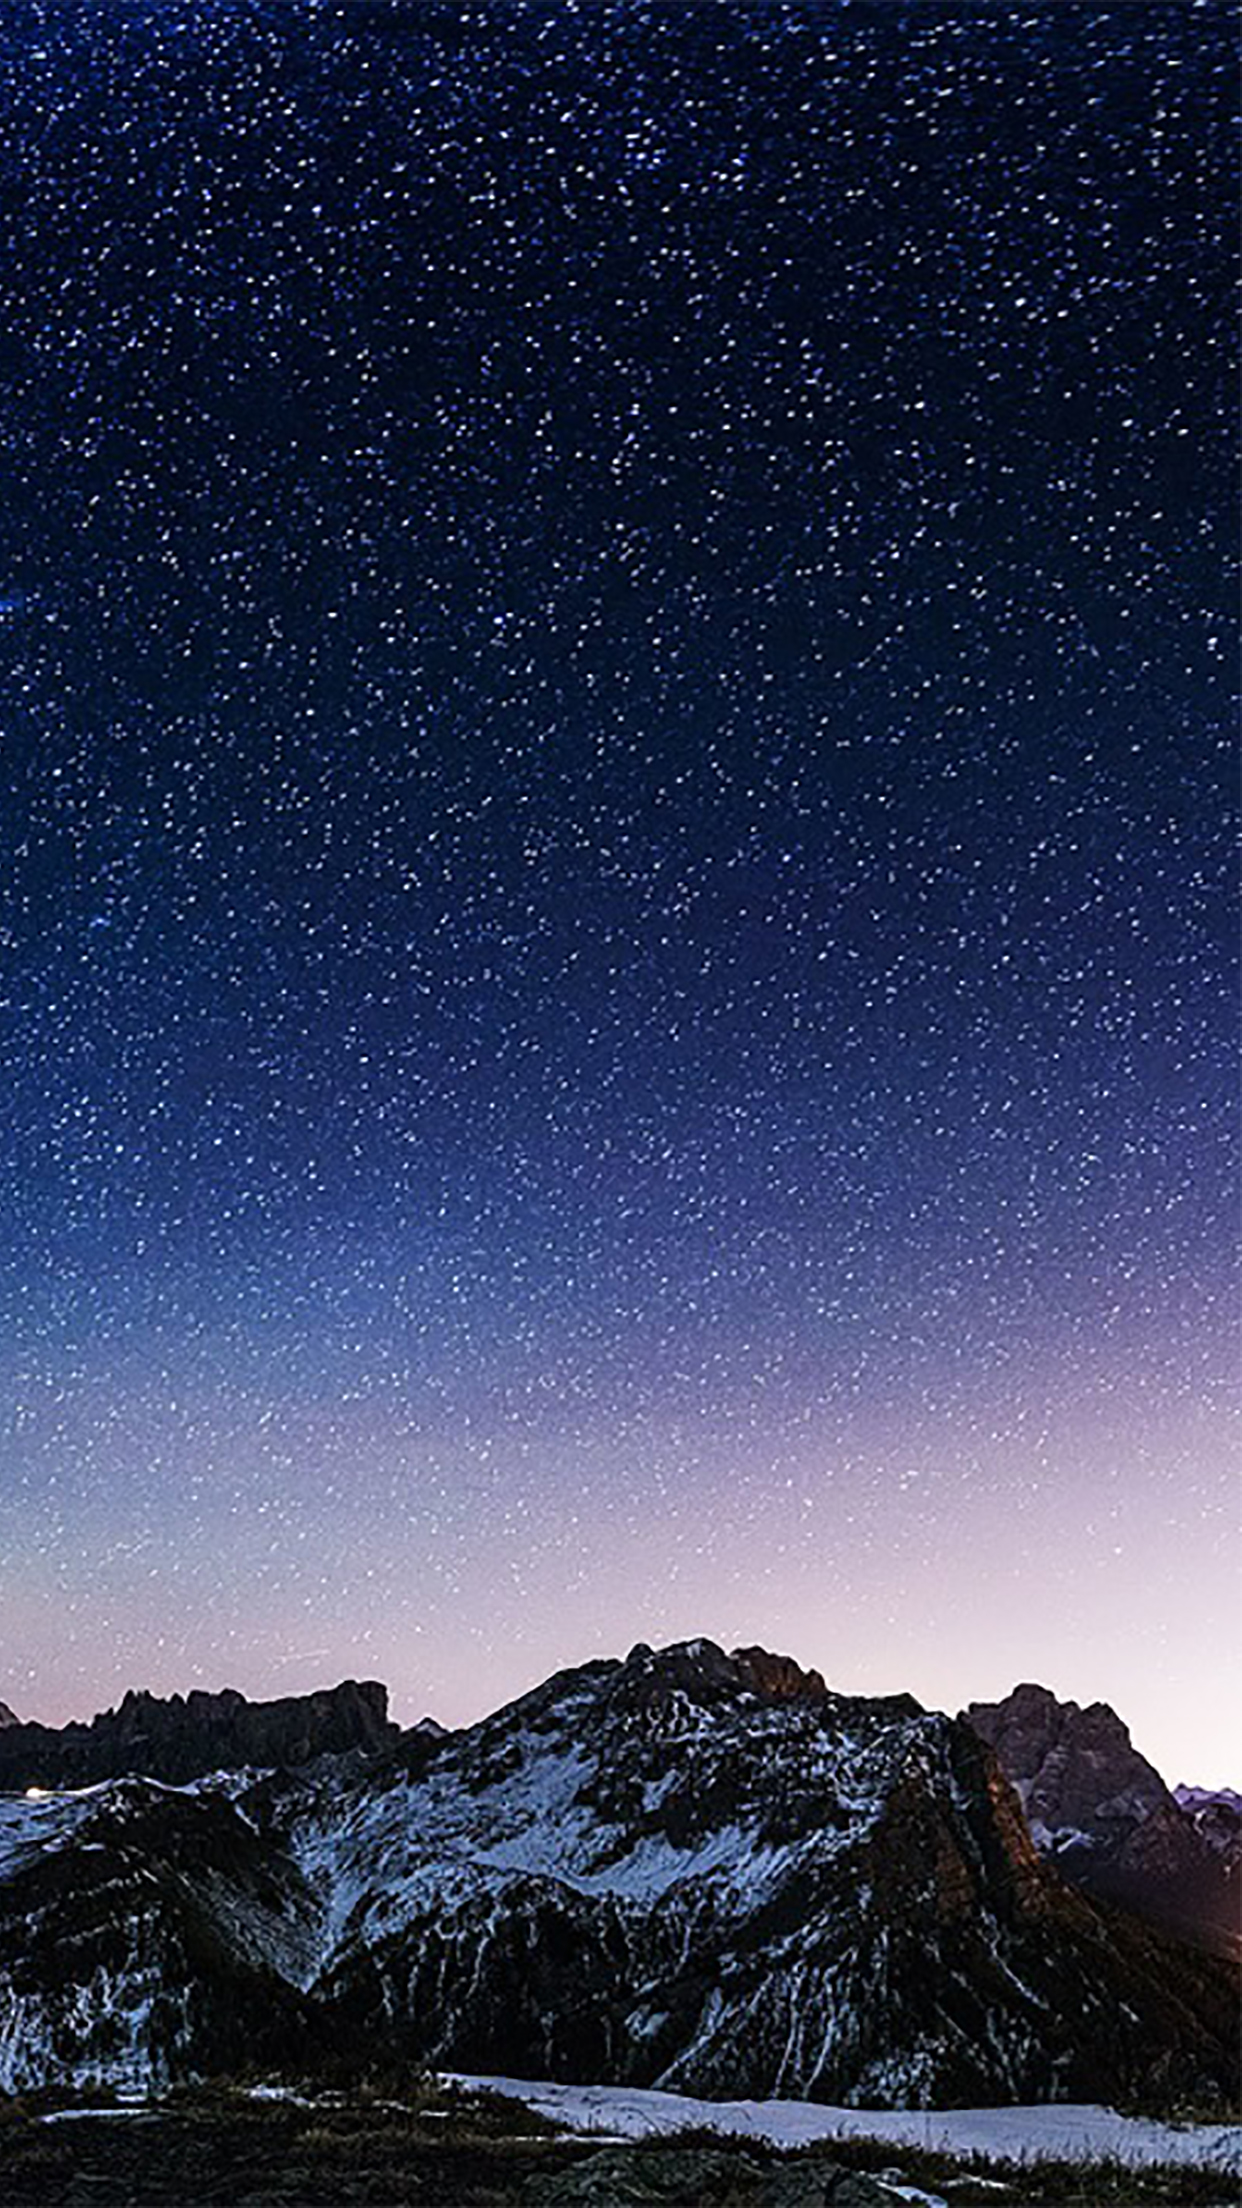 Sky Sky with Stars 3Wallpapers iPhone Parallax Les 3Wallpapers iPhone du jour (17/12/2016)